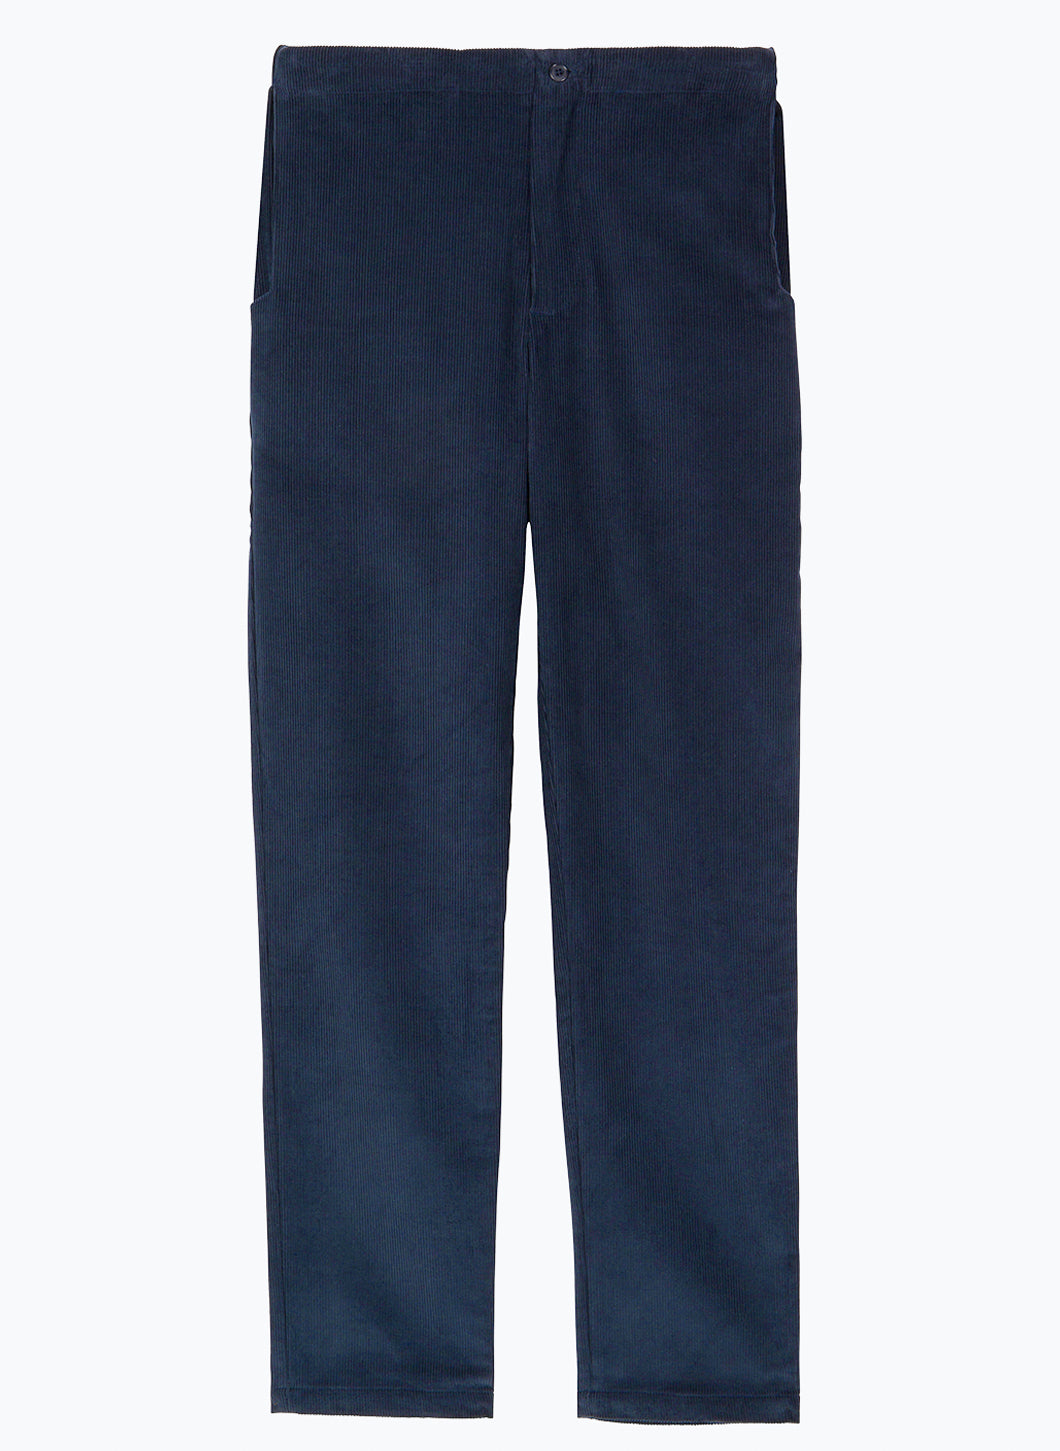 Pants with Notched Pockets in Navy Blue Corduroy